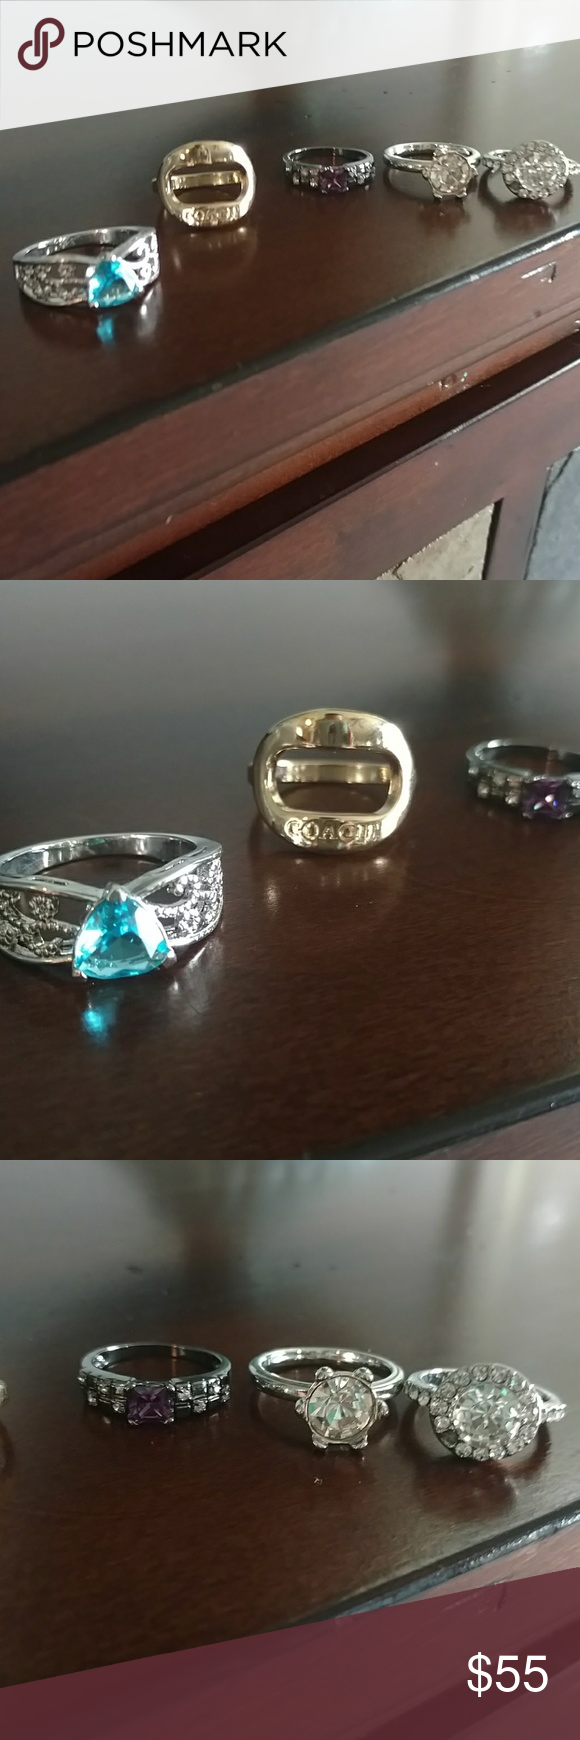 Lot of genuine vintage rings size 7-9 Lot is for genuine rings. Sterling silver, Platinum and titanium alloy is the metals. Blue topaz and amethyst and CZ stones. Will not separate lots Jewelry Rings